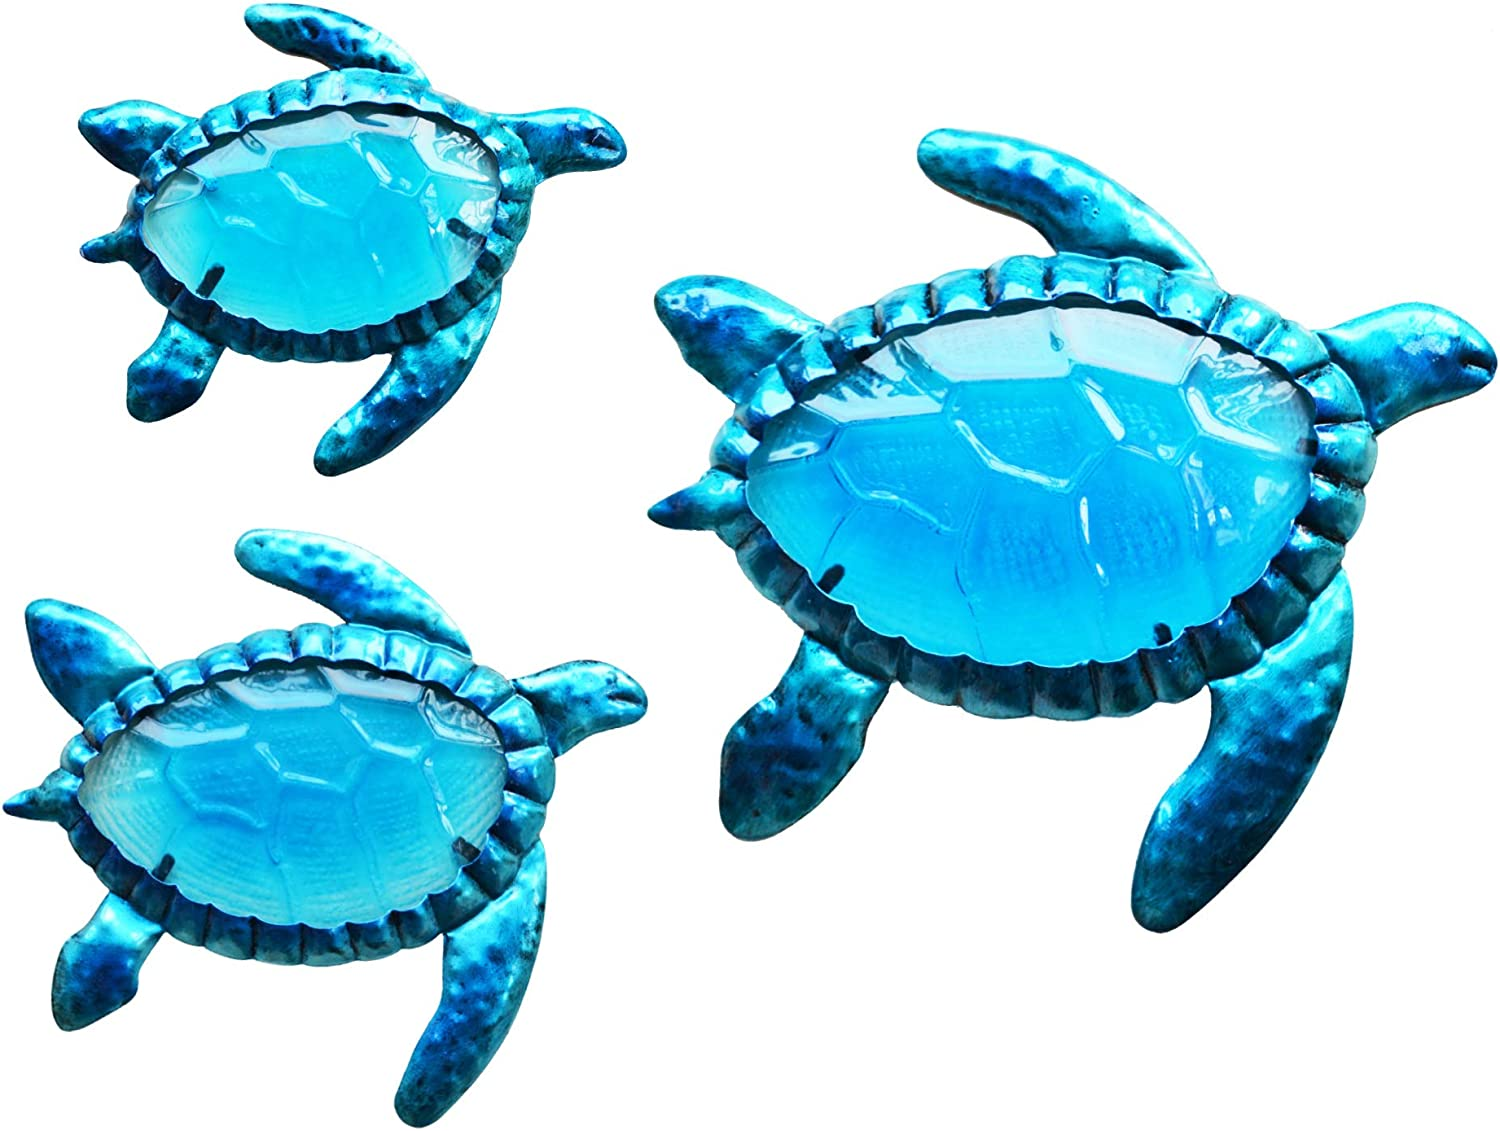 ShabbyDecor Coastal Ocean Sea Turtle Hanging Wall Art for Pool Patio Fence Décor Outdoor or Indoor Set of 3,Metallic Blue